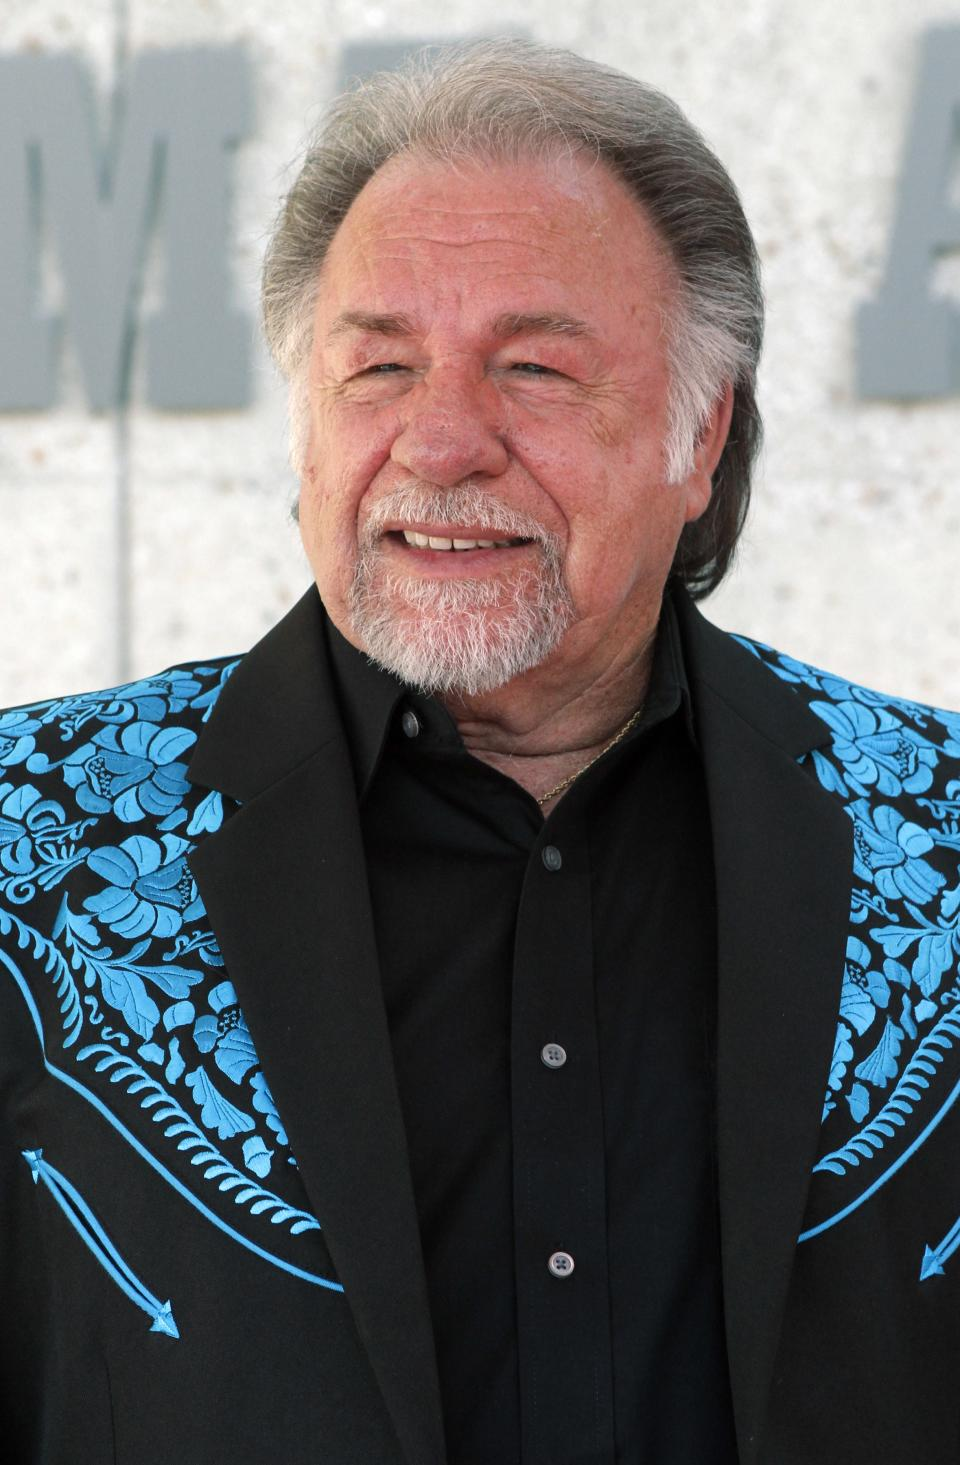 Gene Watson attends the Country Music Hall of Fame Inductions on Sunday, Oct. 21, 2012 in Nashville, Tenn. (Photo by Wade Payne/Invision/AP)